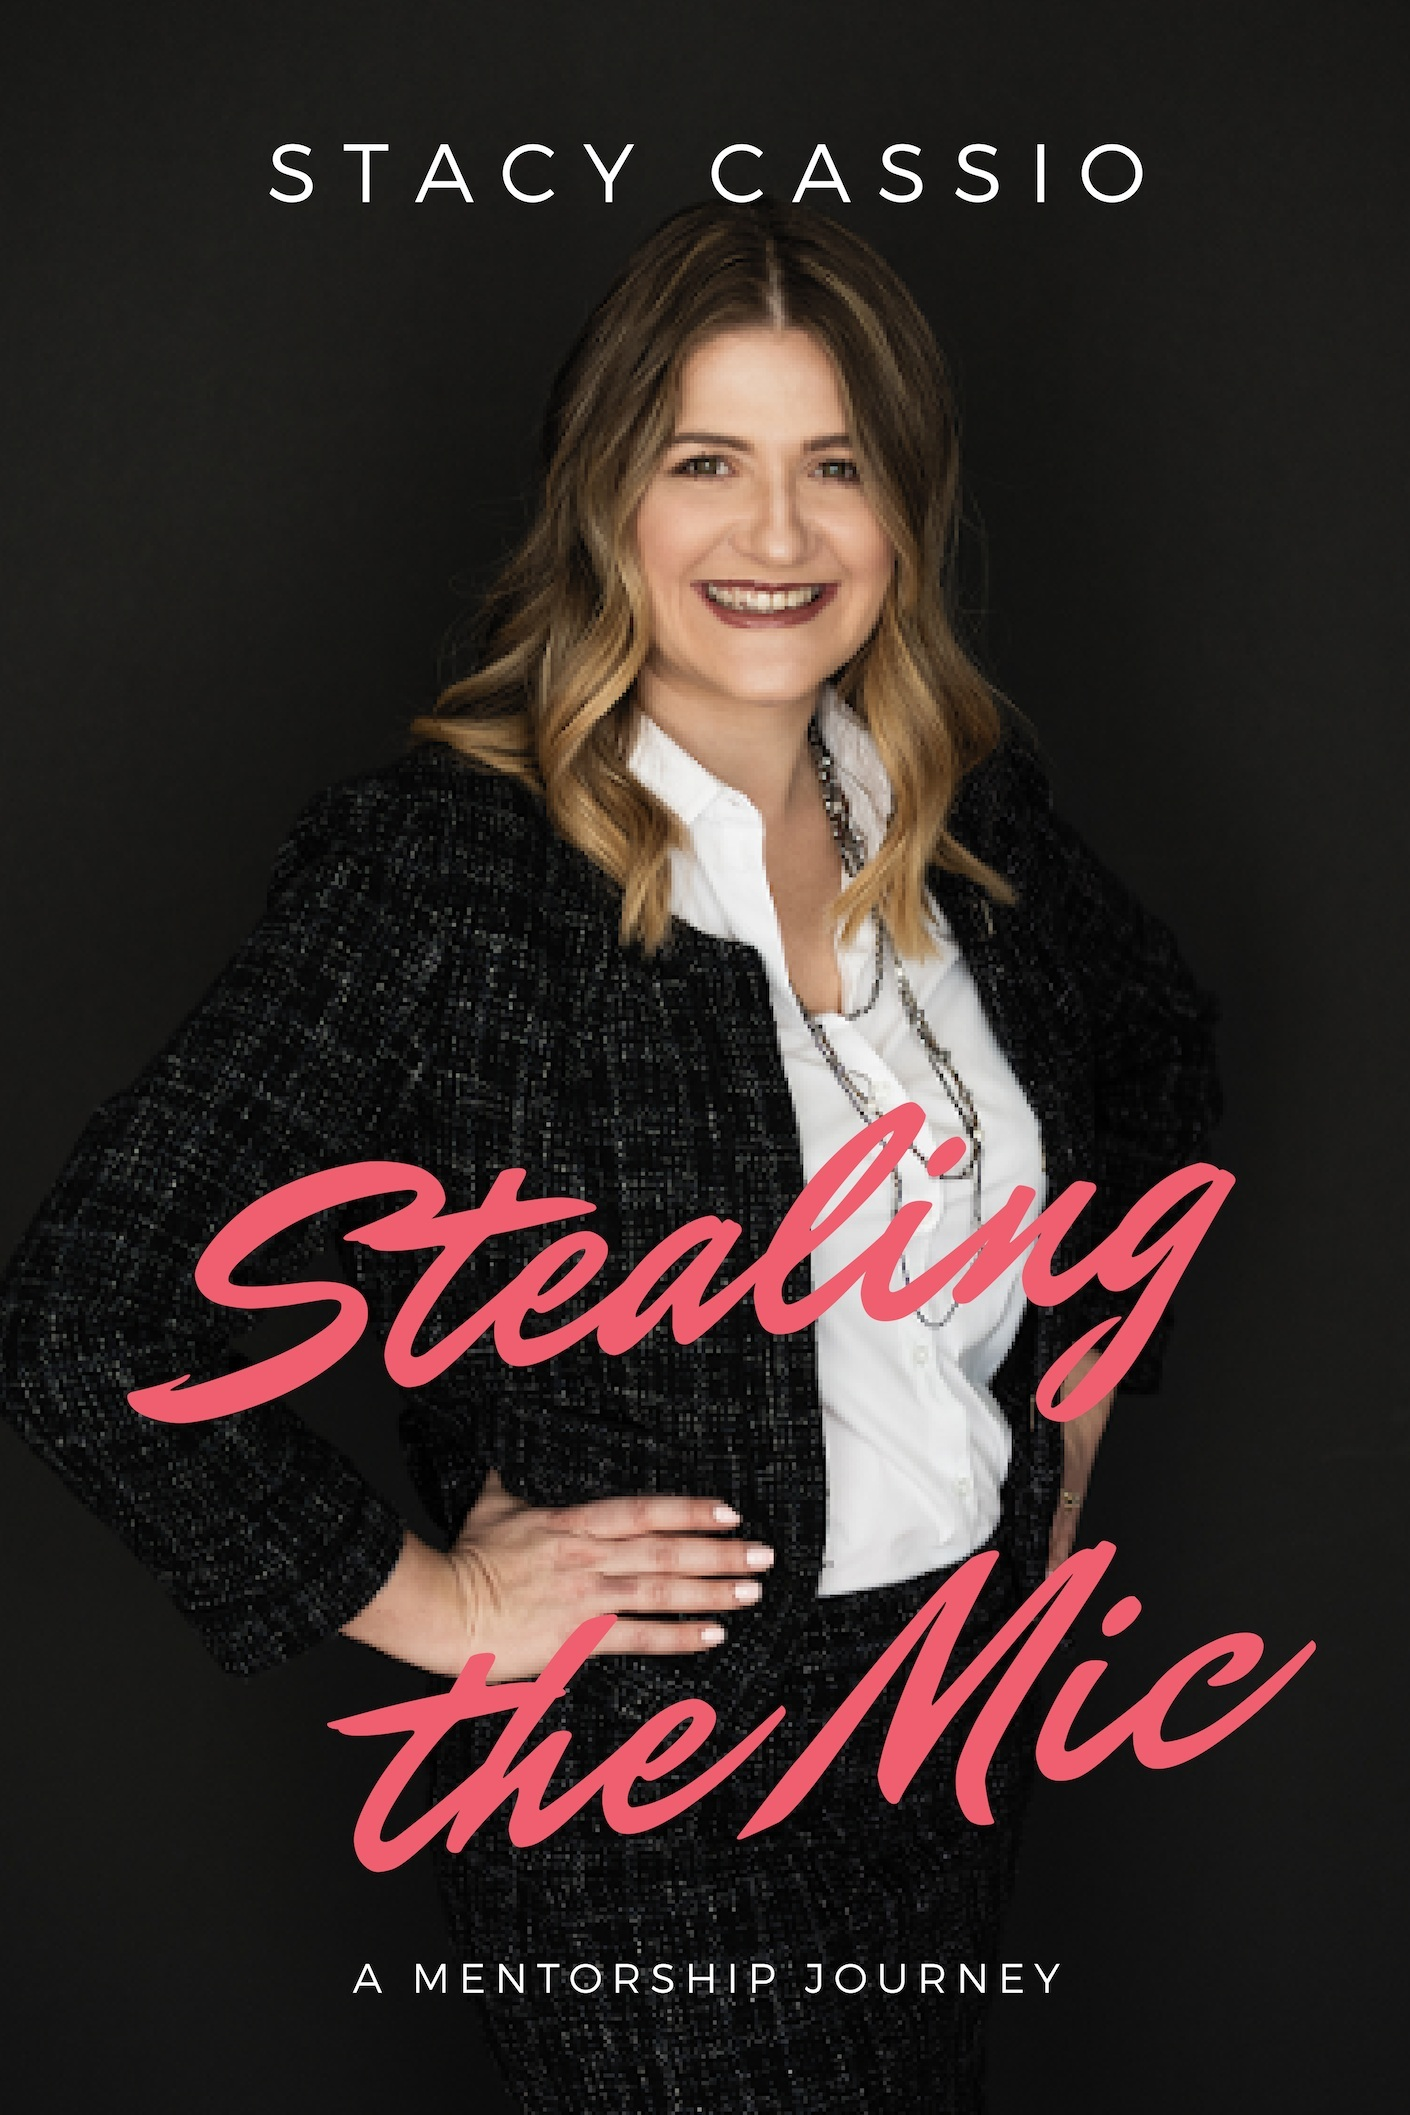 """Coming Fall 2019: """"Stealing the Mic: A Mentorship Journey"""" By Stacy Cassio - If you'd like to feature Stacy on your radio, podcast, or TV show, or if you'd like a quote or an interview for newspaper or magazine, please complete this """"Contact Us"""" form."""